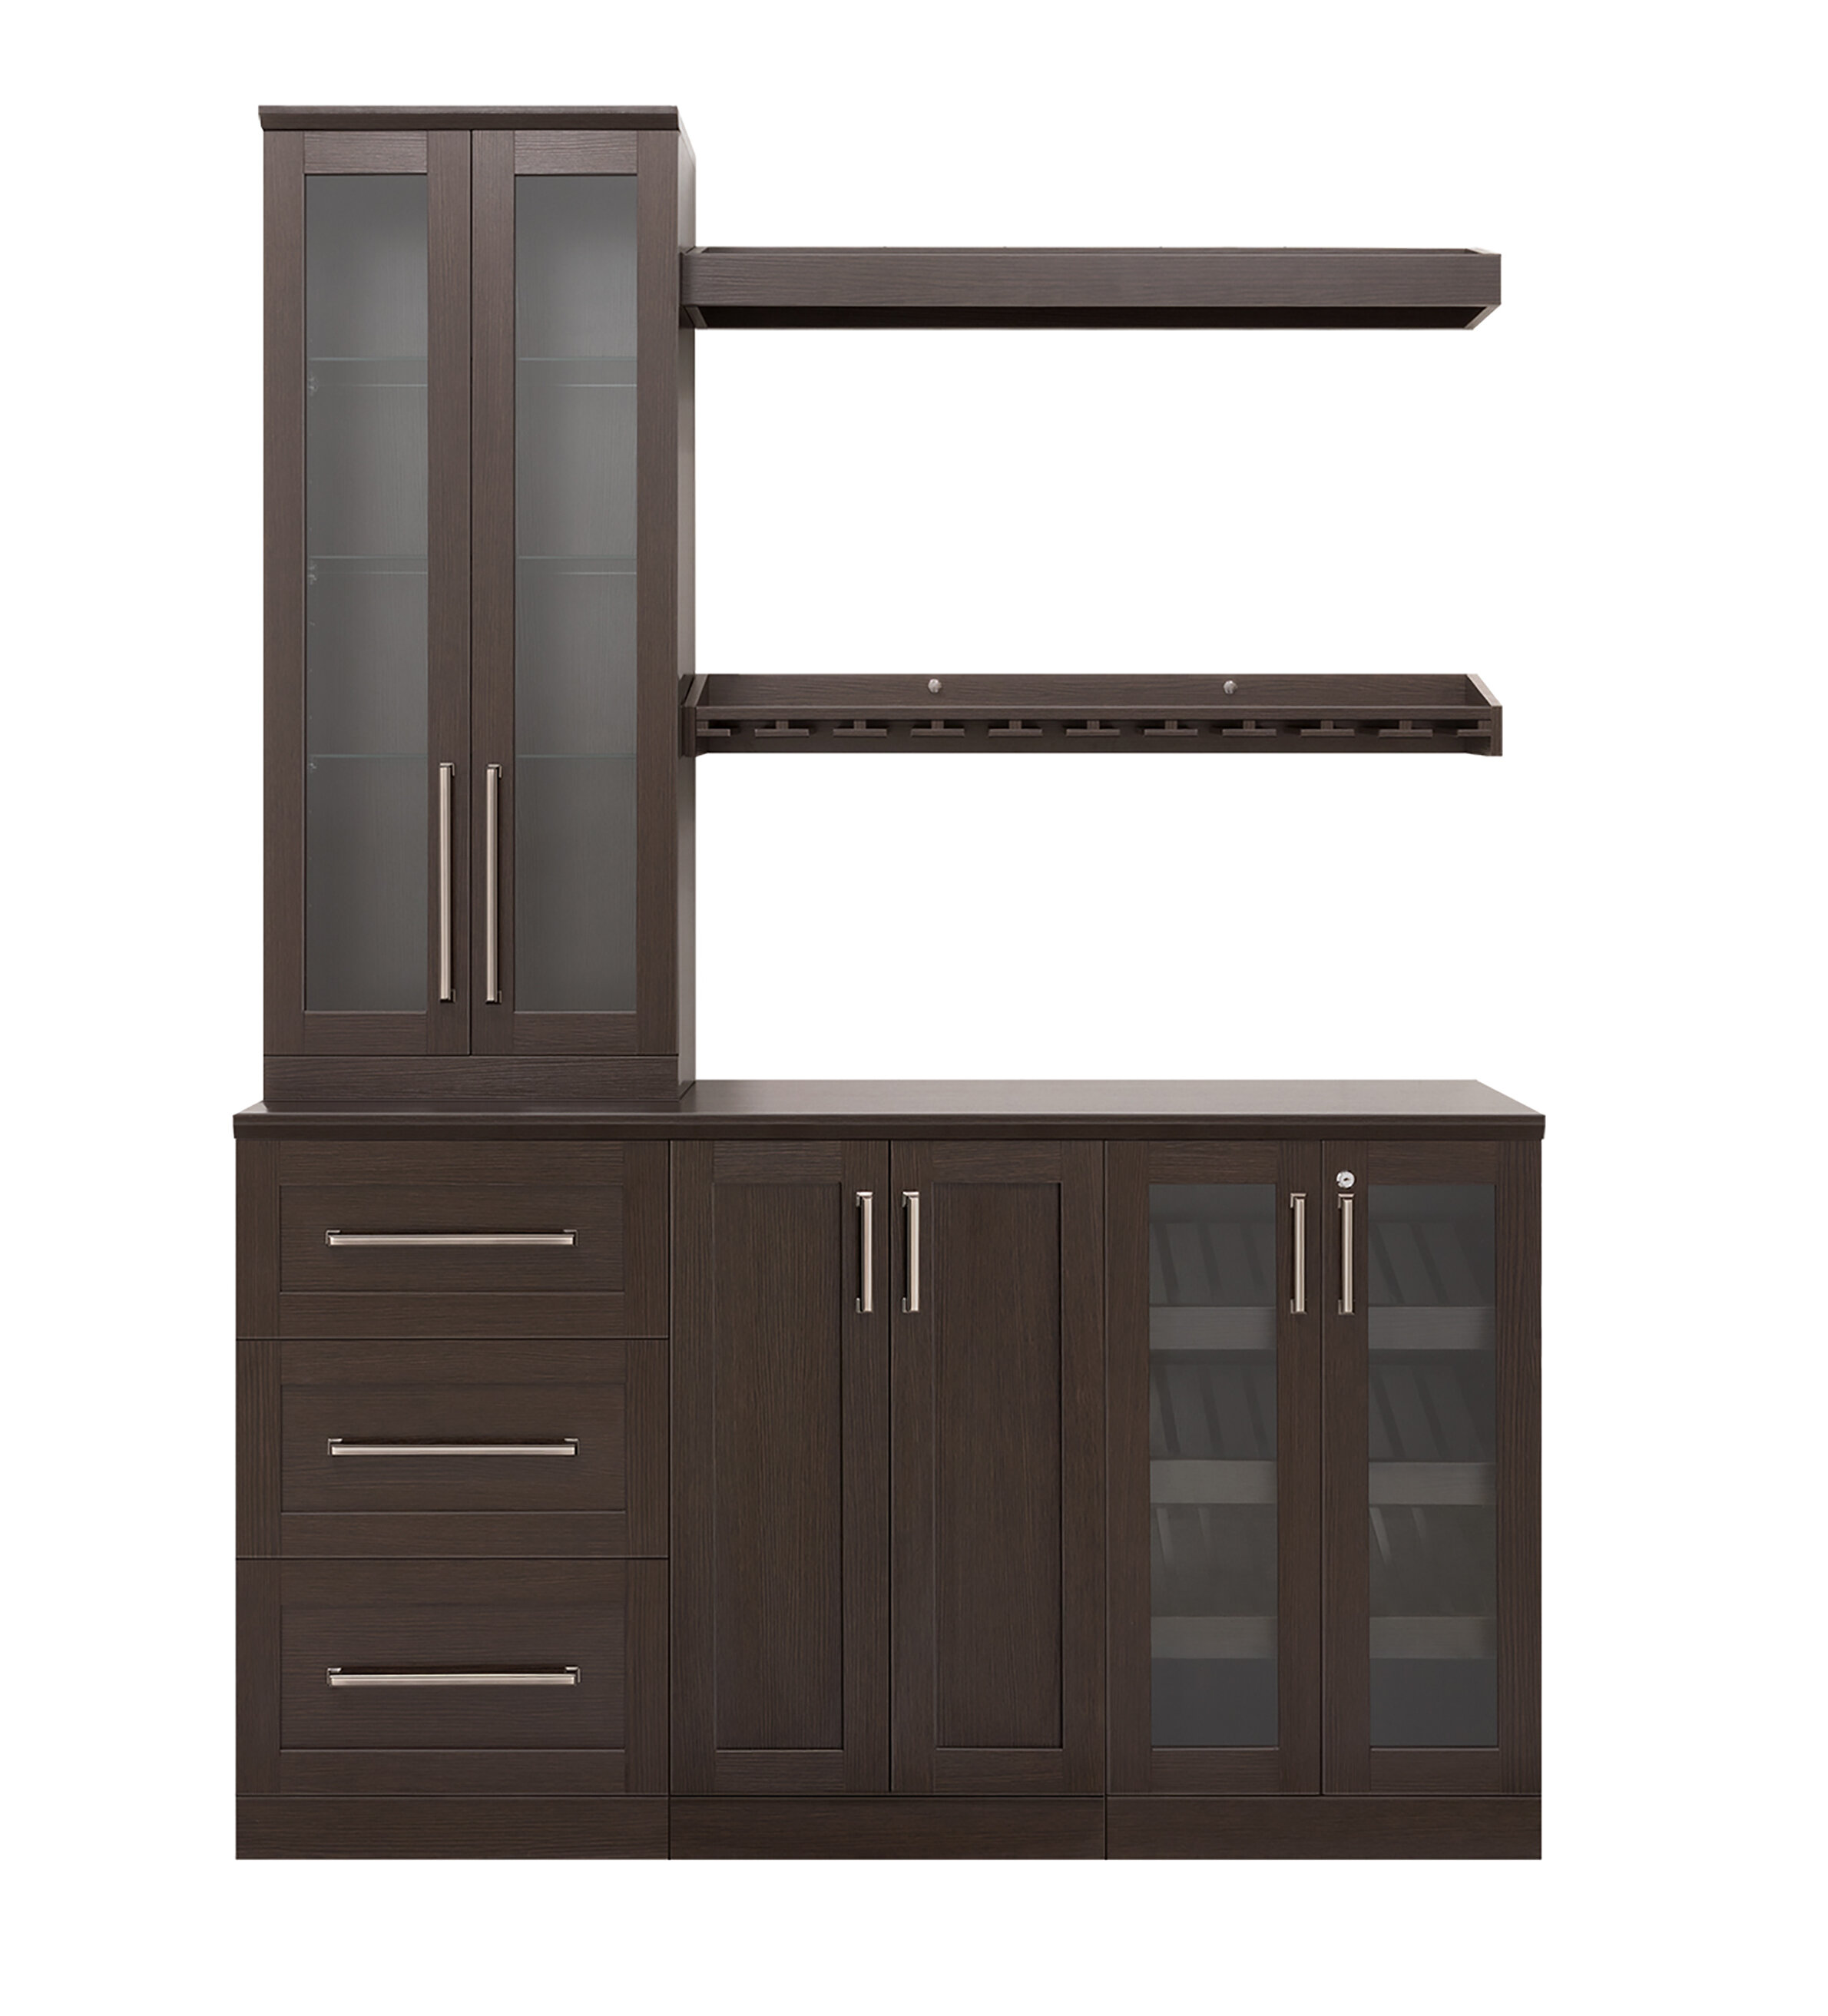 Newage Products Home 7 Piece Set Shaker Style 21 Bar Cabinet Reviews Wayfair